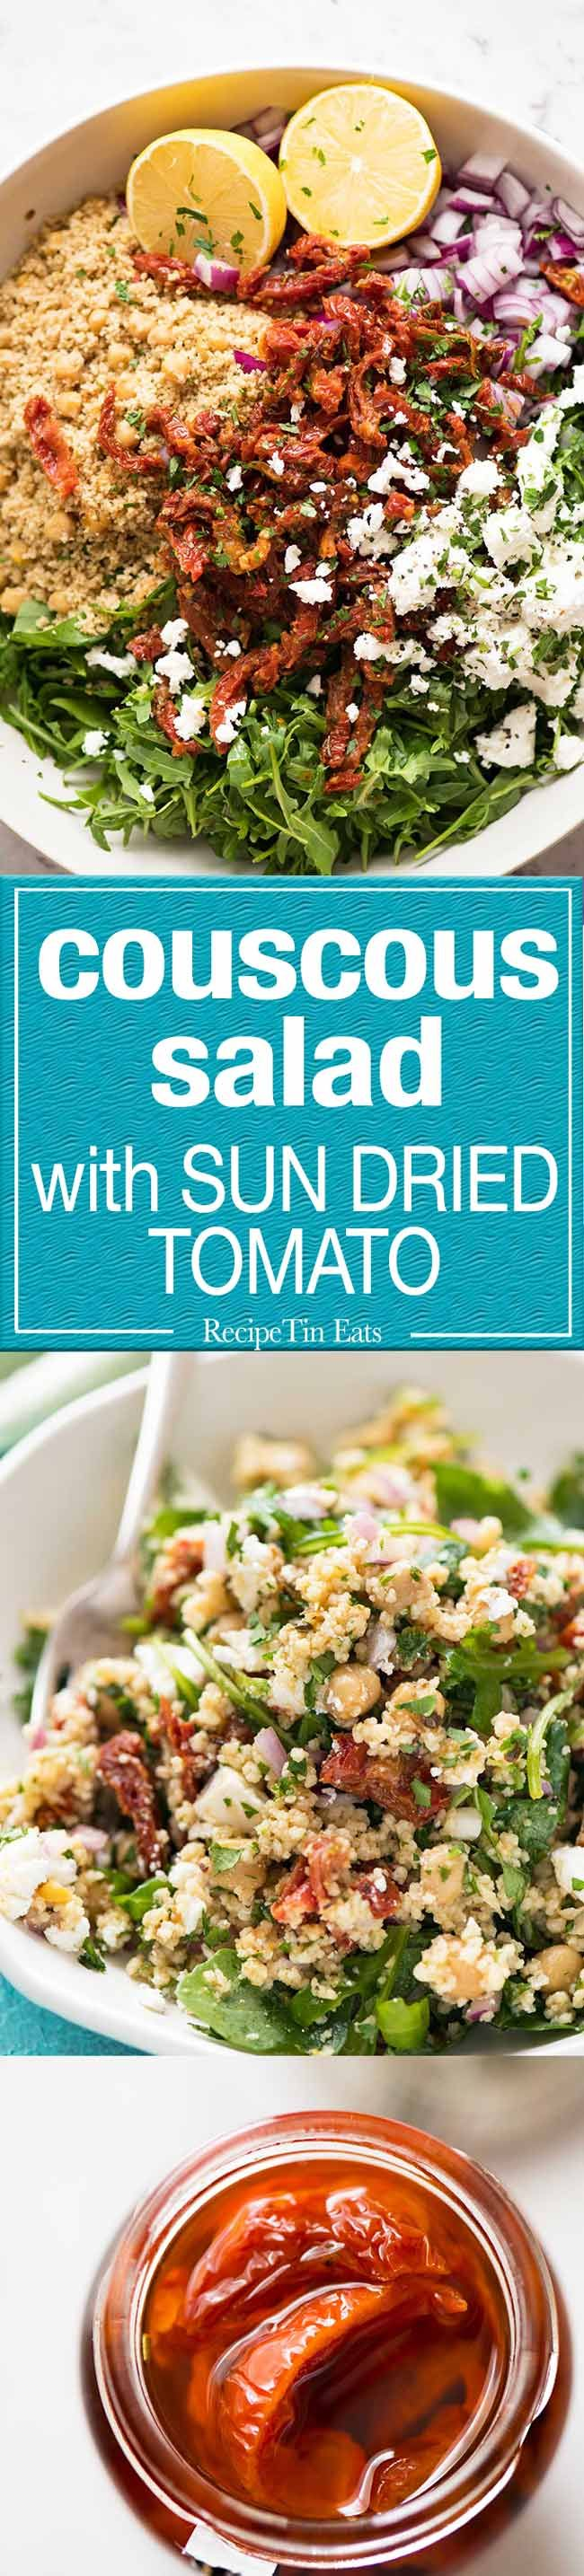 917 best Looks Yummy - Salads, Slaws & Dressings images on Pinterest ...